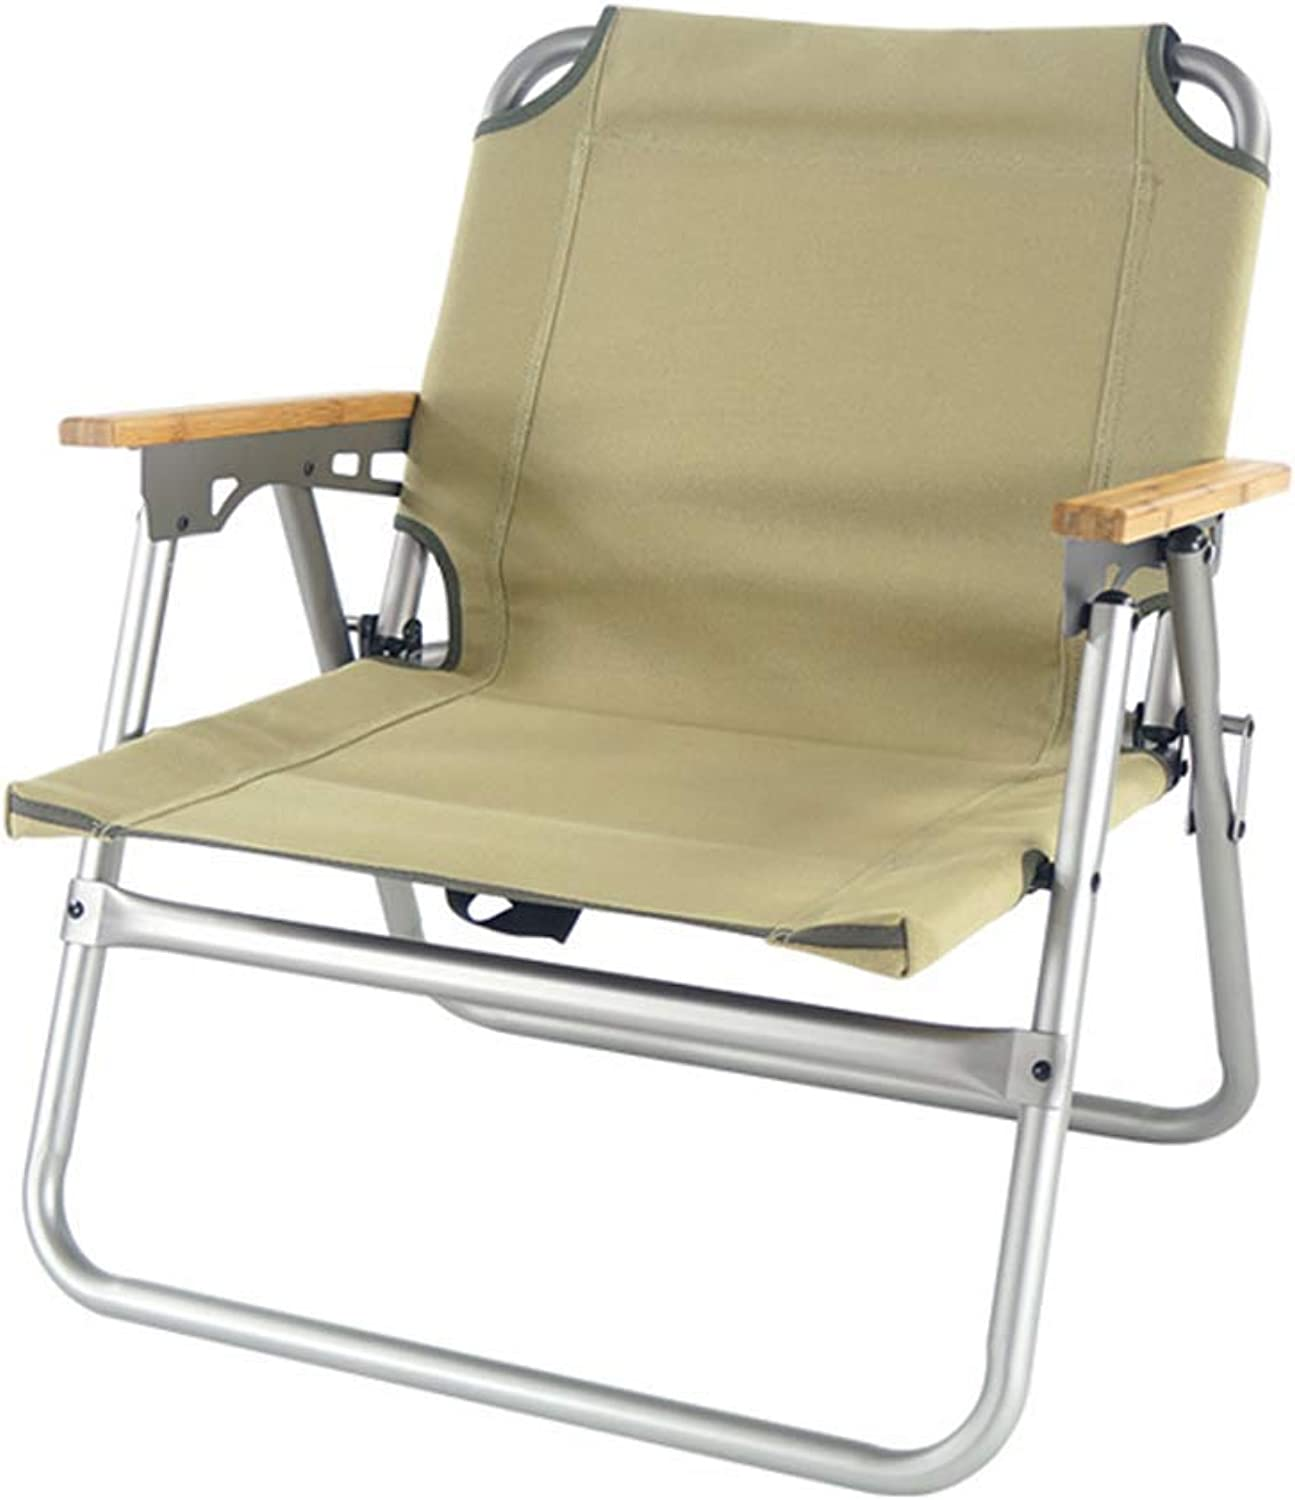 Outdoor Products Portable Folding Chairs Folding Stool Outdoor Family Indoor Ride in Cool Park Camping Beach Beach Chair